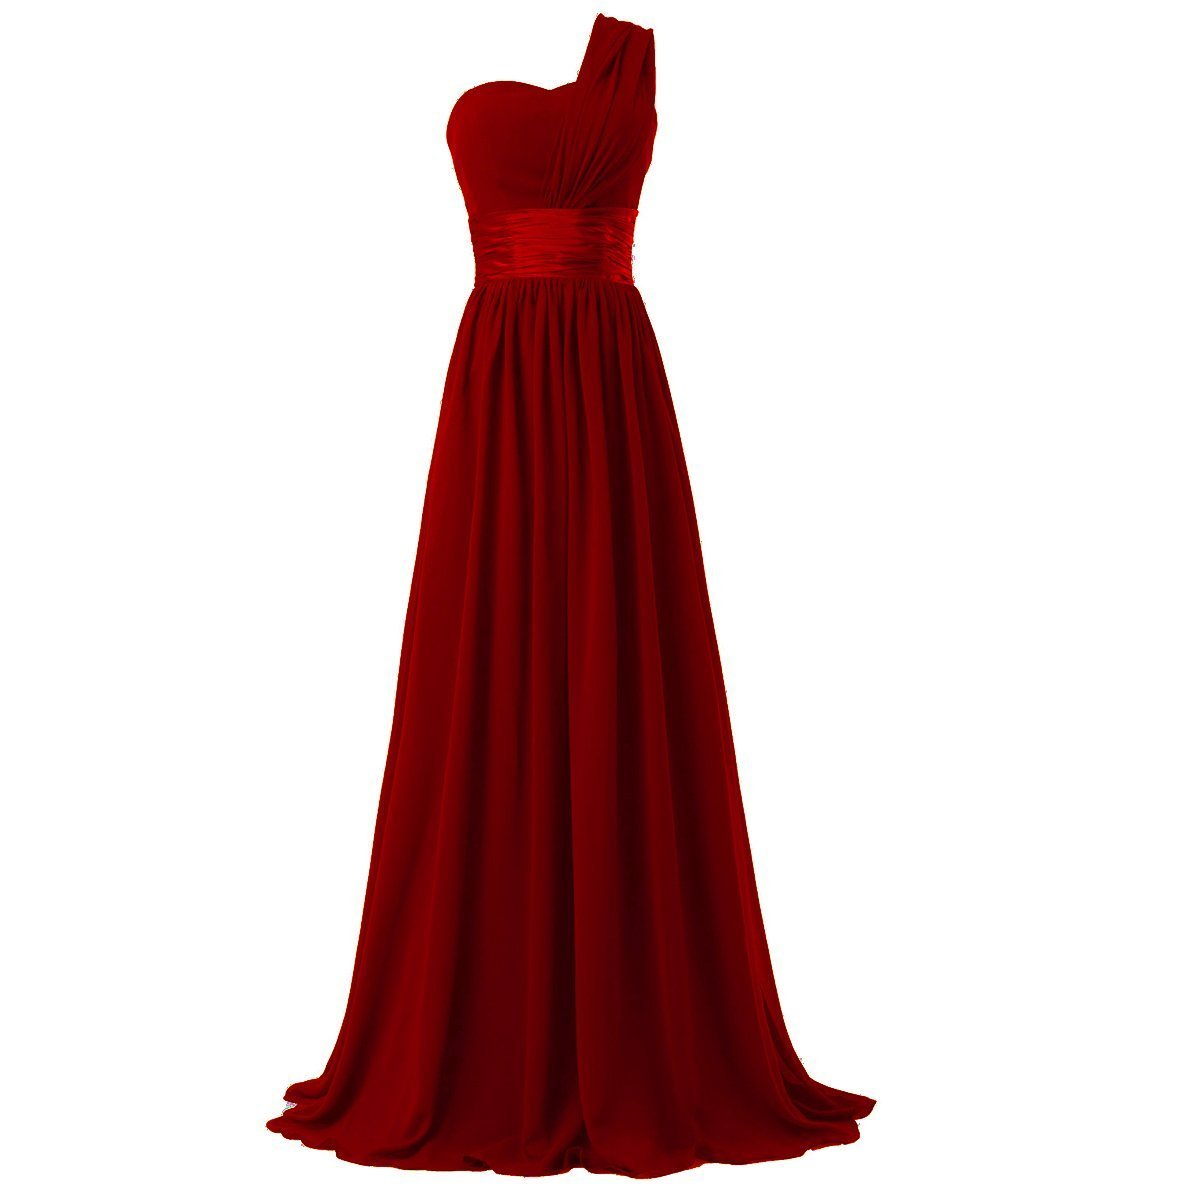 921869b67a0d Coral Bridesmaid Dresses On Amazon